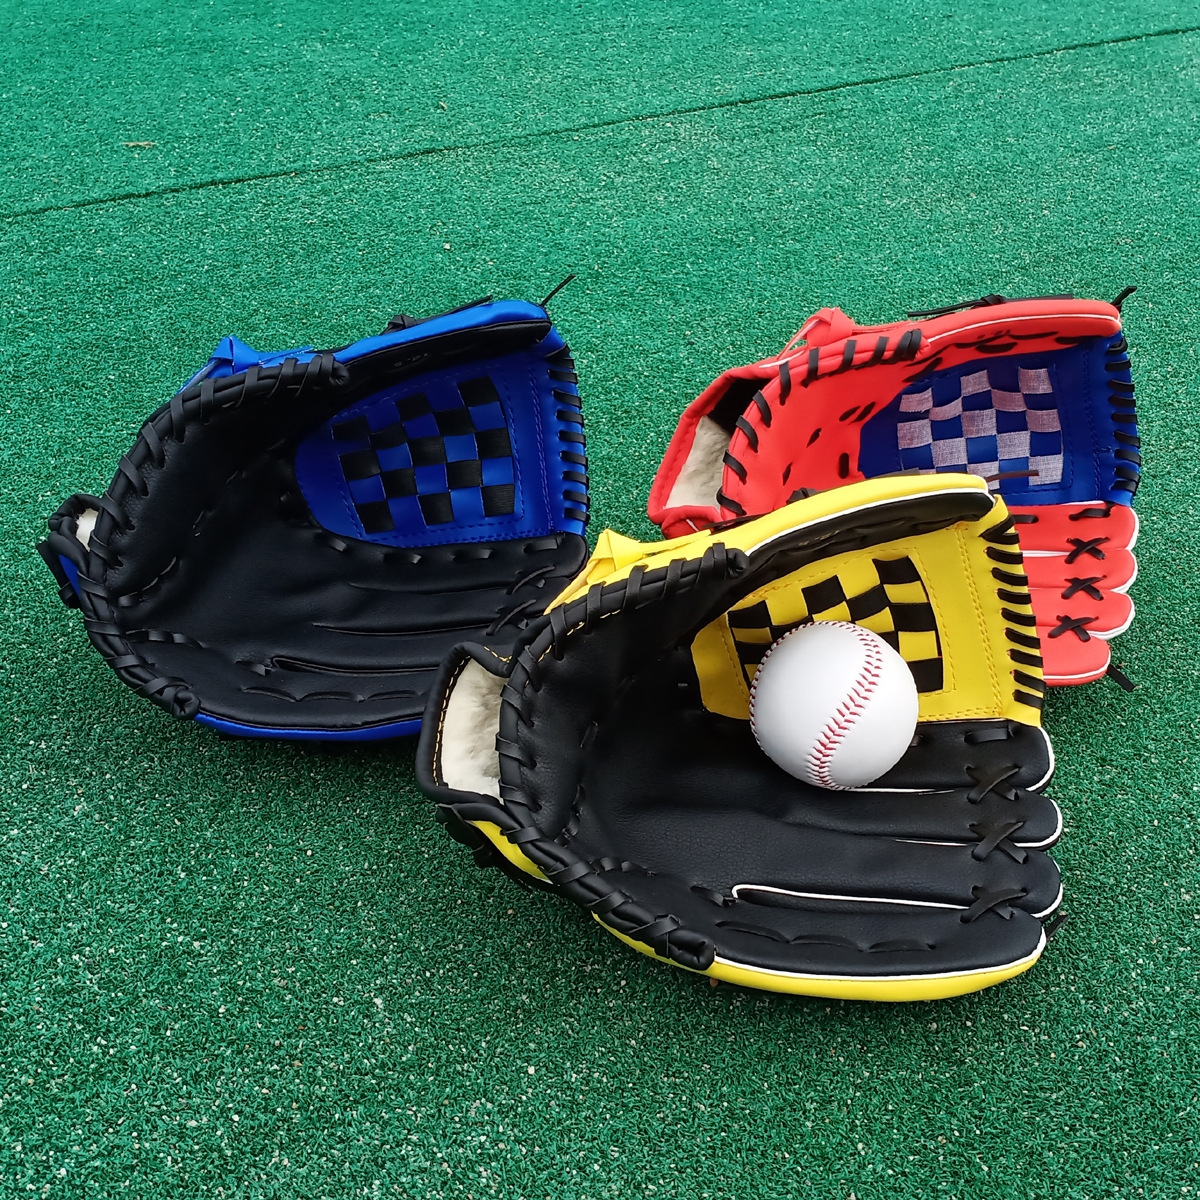 Best Baseball Gloves For 4 to 5 Year Old Kids